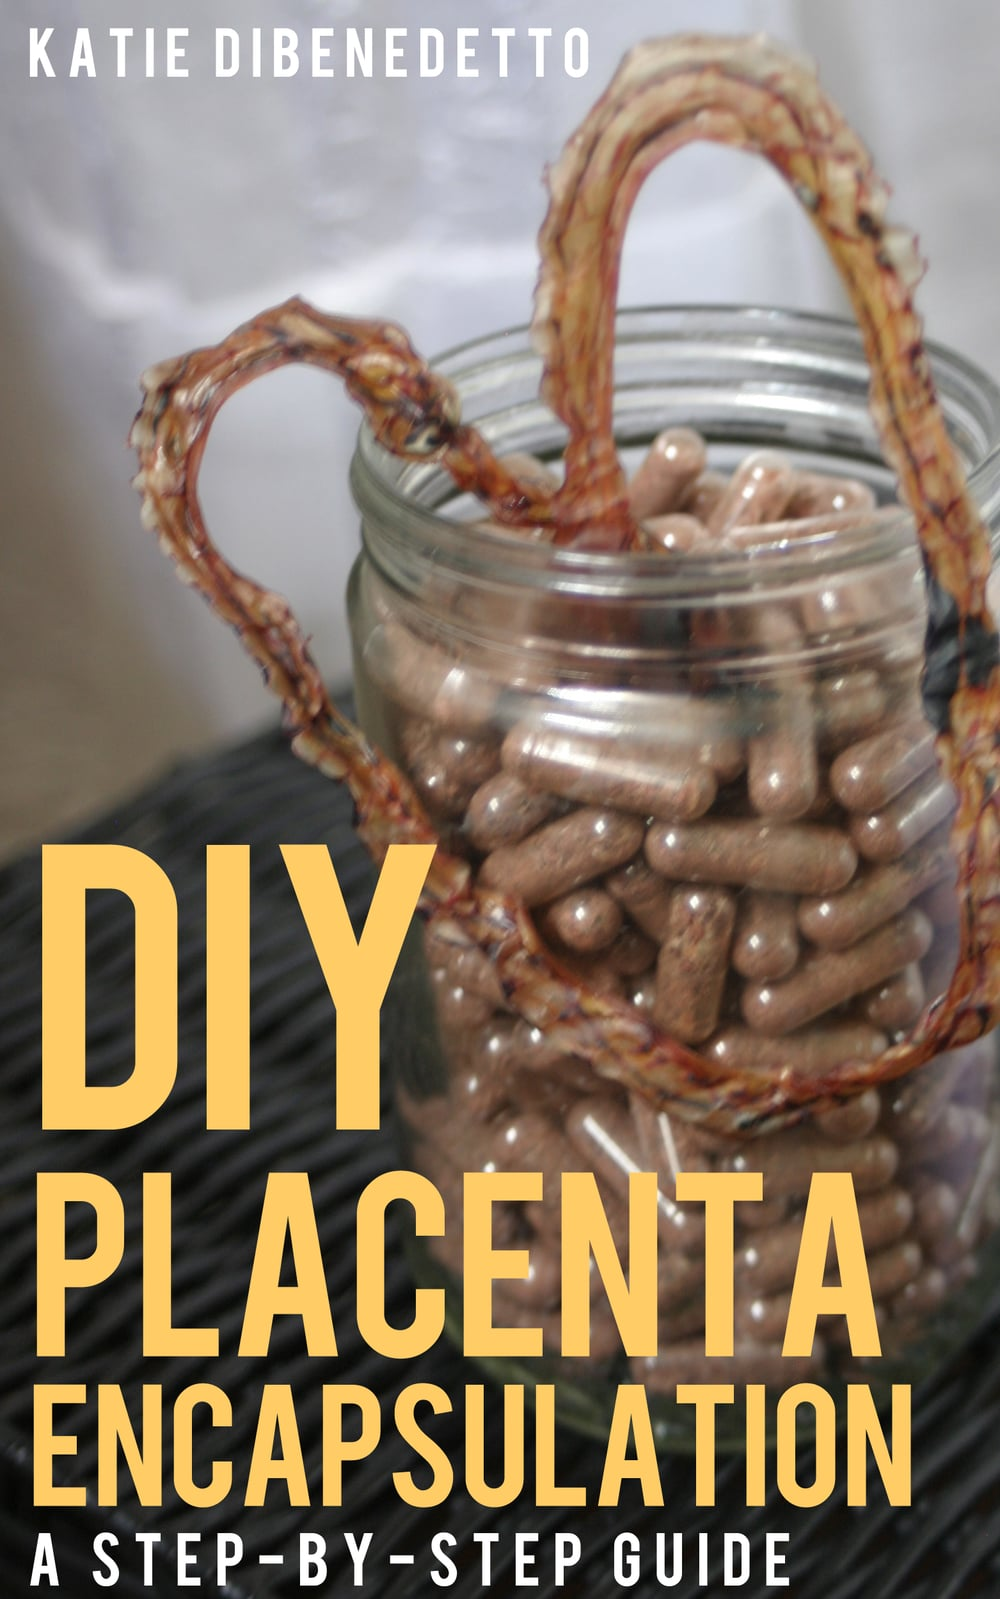 DIY Placenta Encapsulation | Cock & Crow #DIY #Placenta #encapsulation